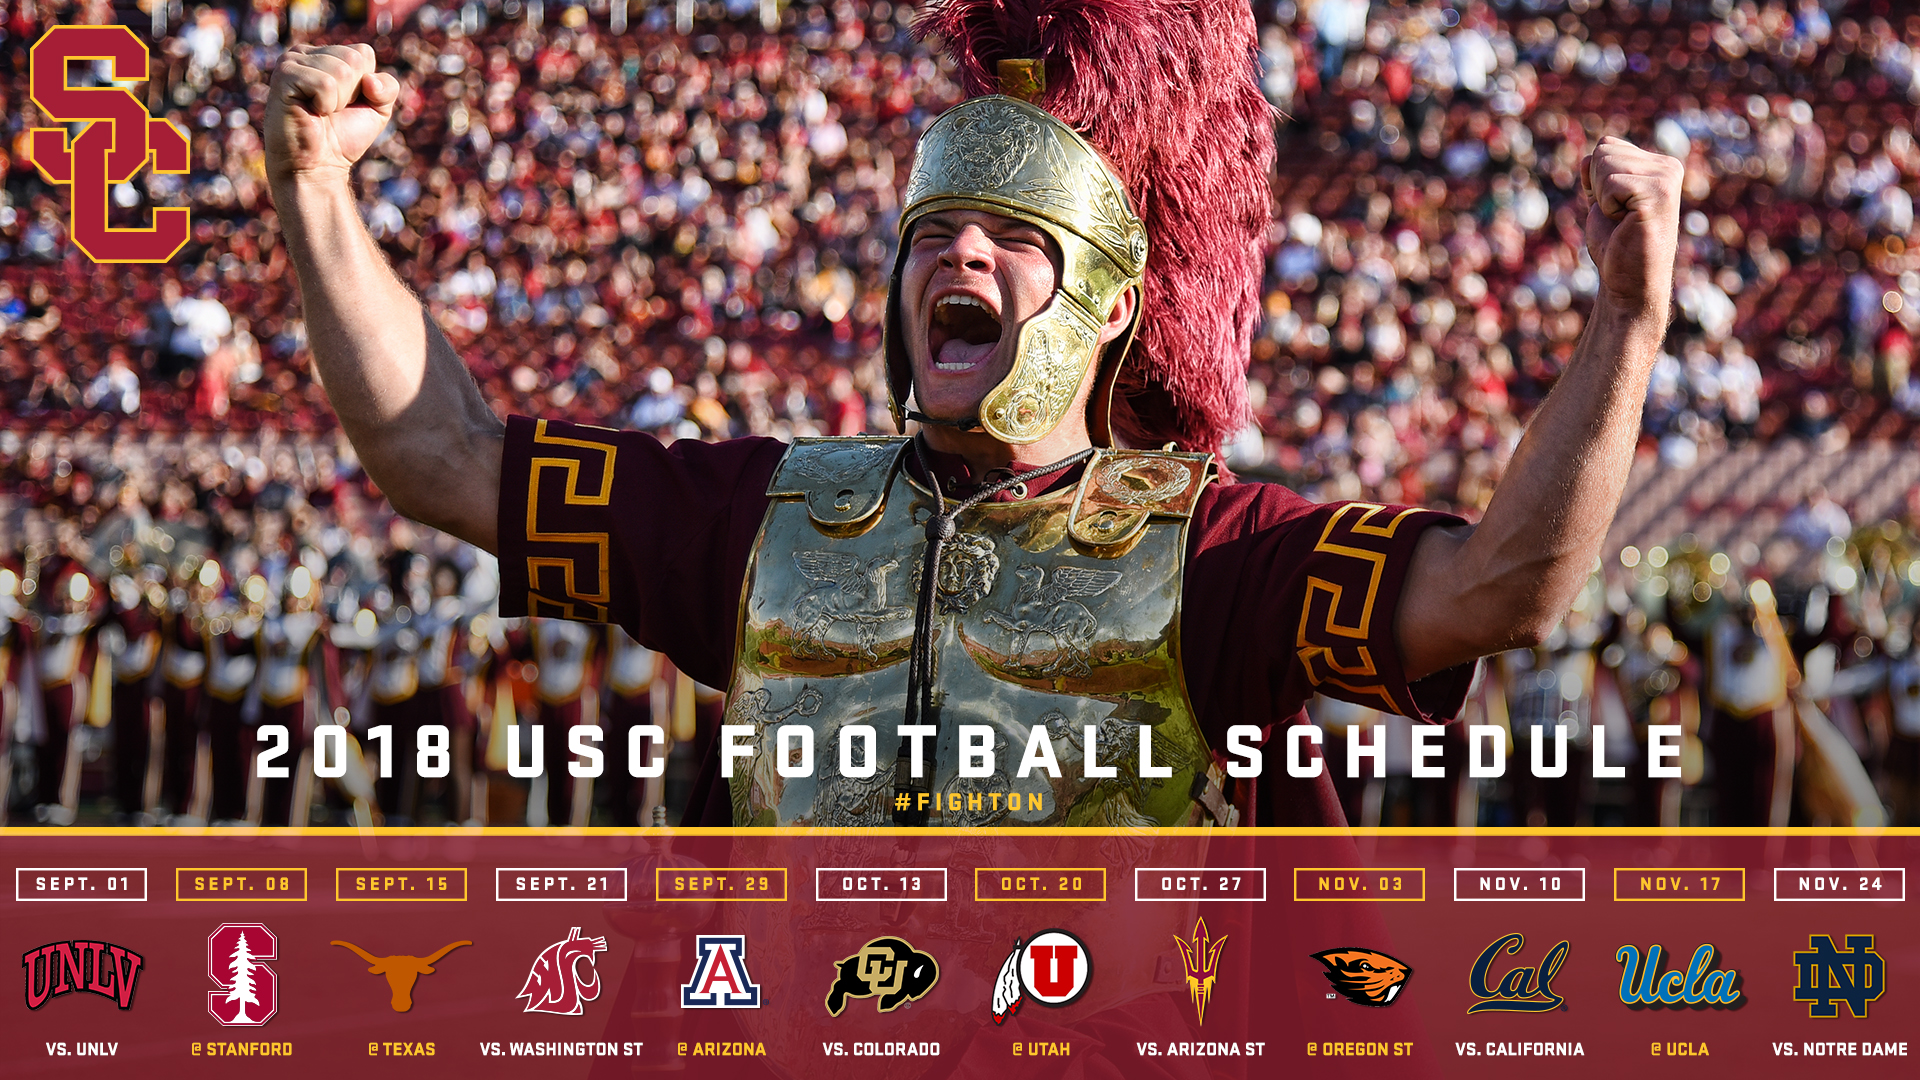 USC's 2018 Football Schedule Announced   University of Southern